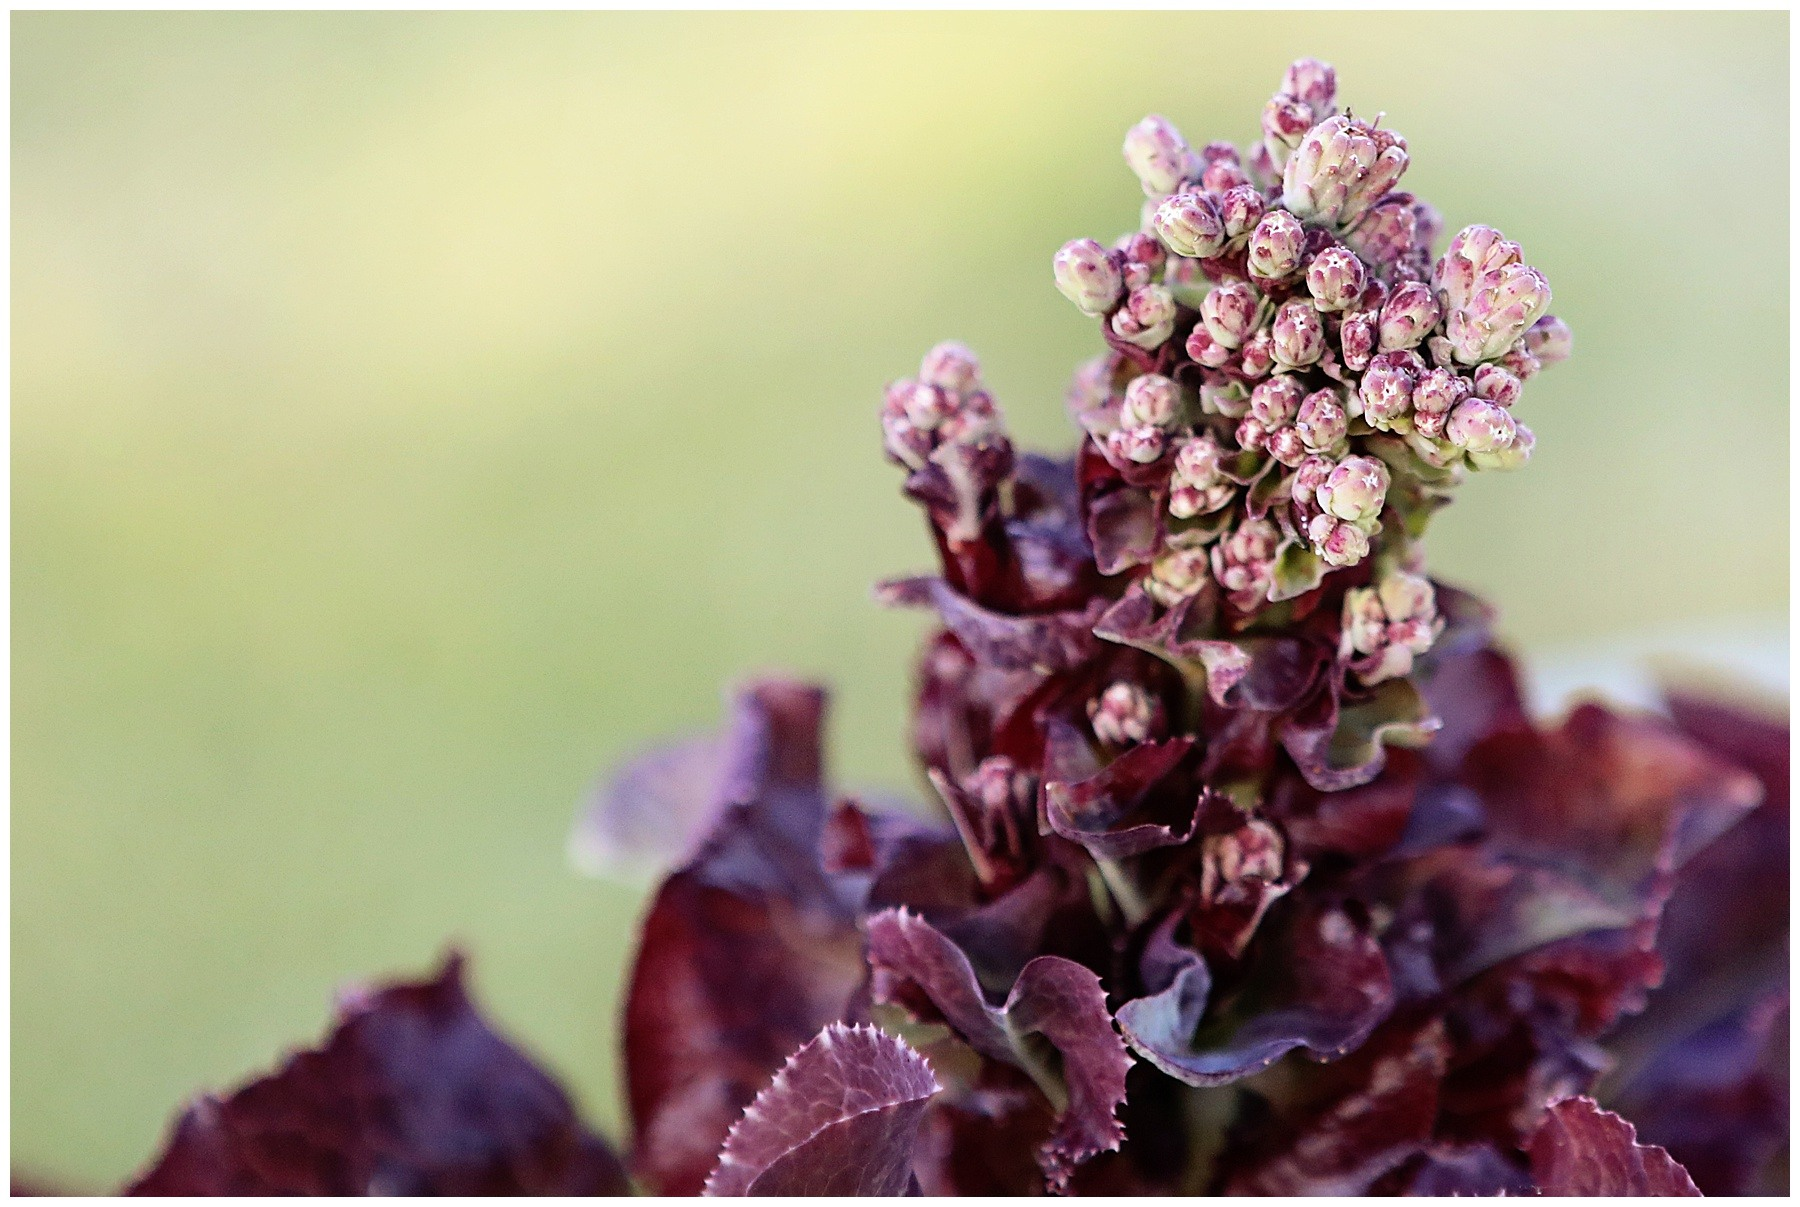 What does bolting mean in gardening?